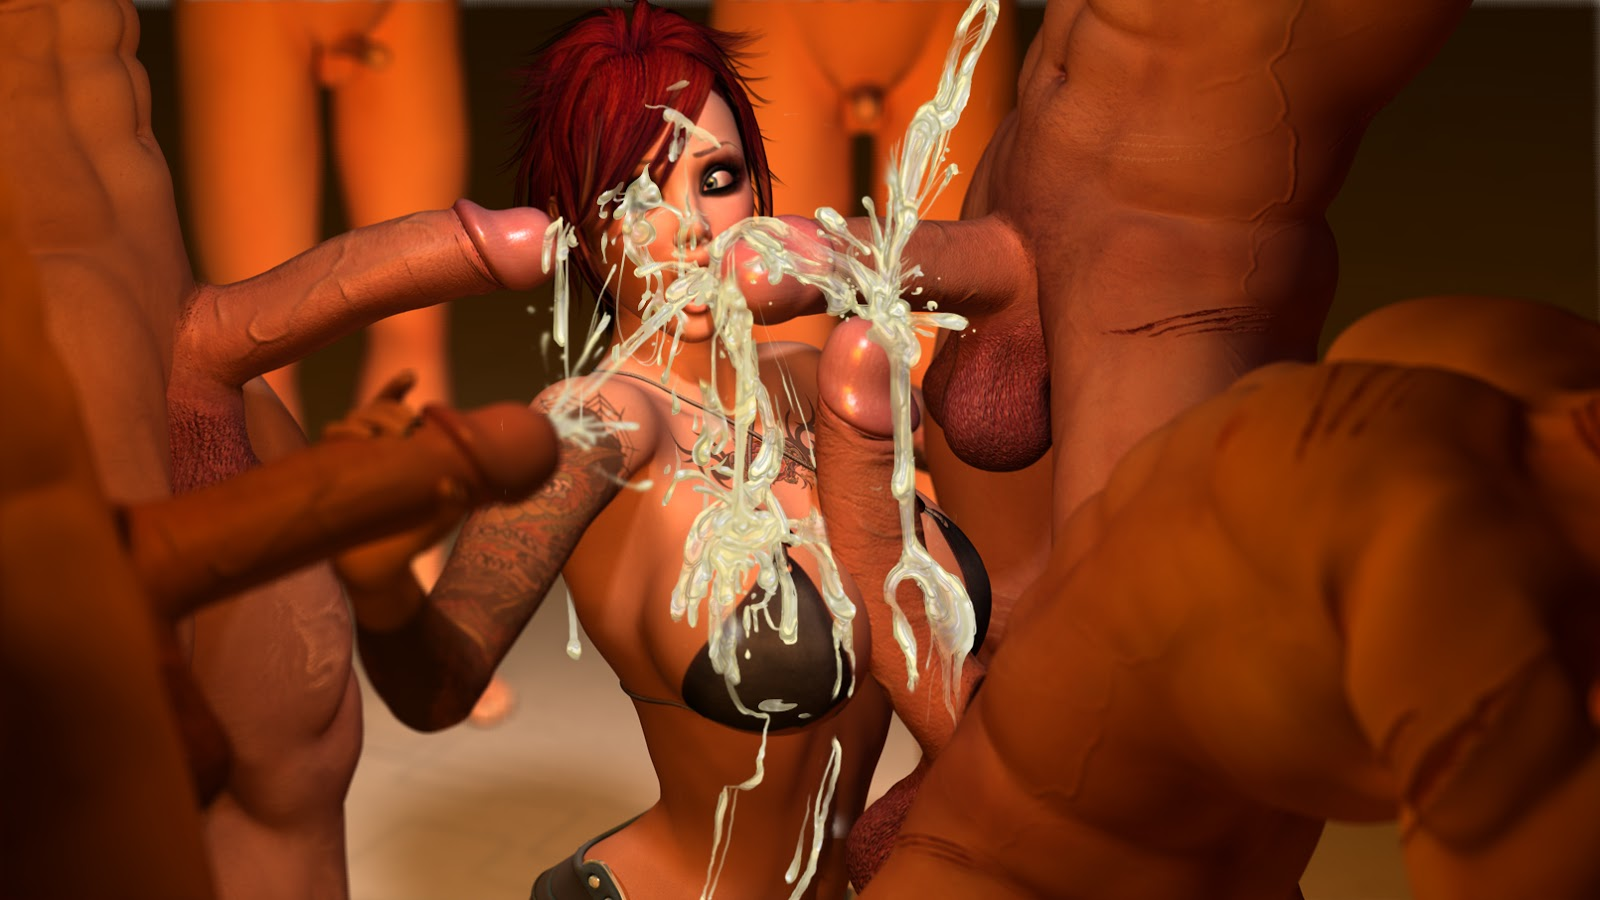 Lara rip nude for the high res  hentai photos